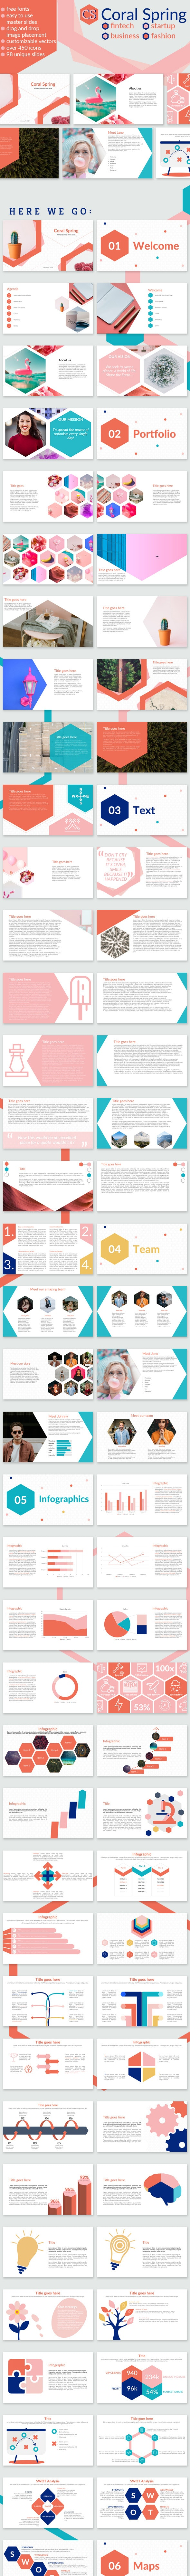 Coral Spring Fintech Startup Business Presentation - Creative PowerPoint Templates